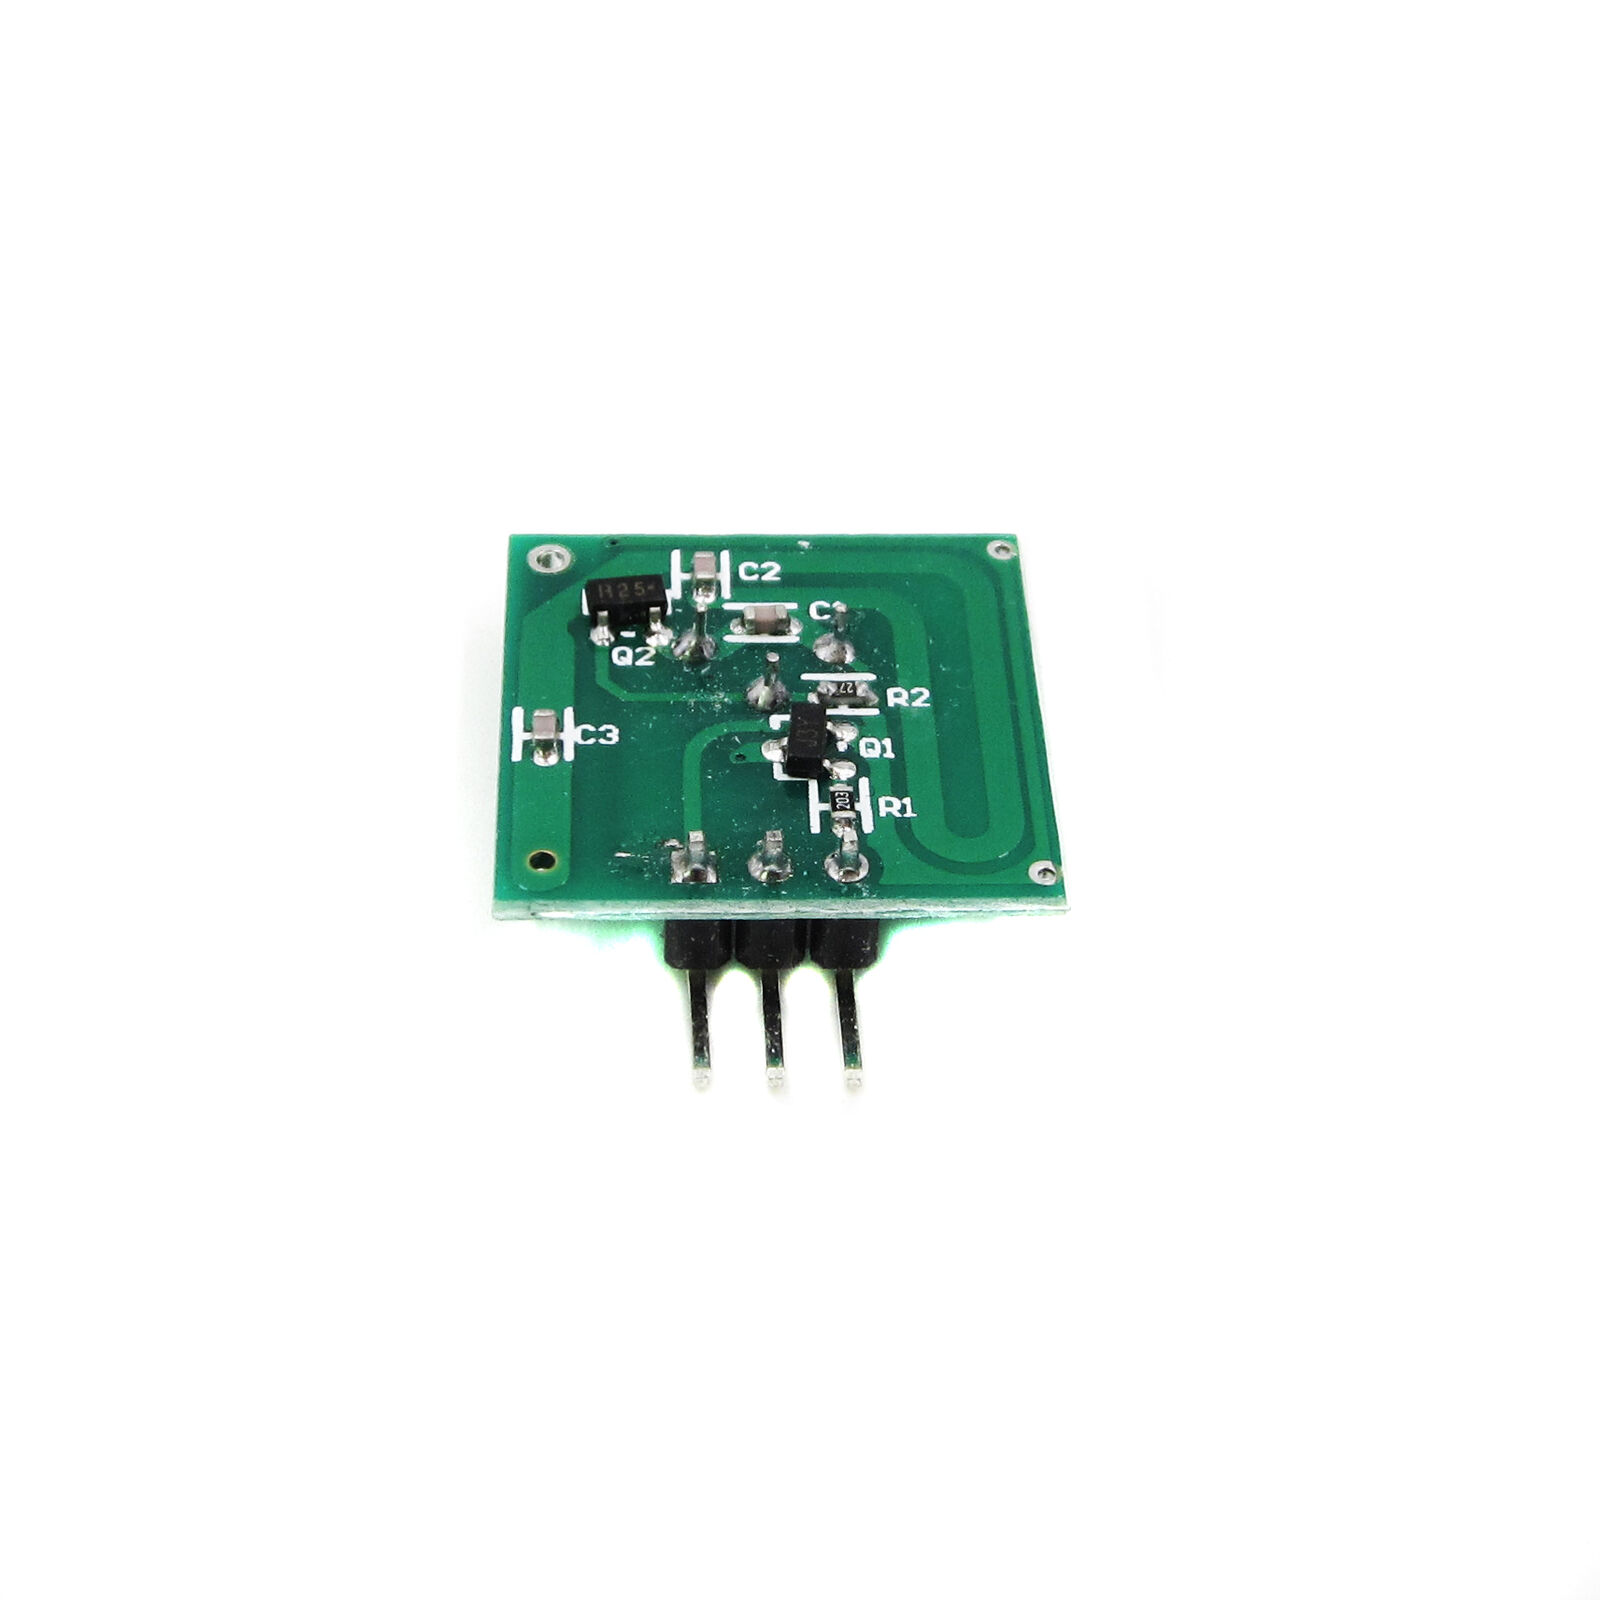 Hall Effect Sensor Pic8051avr Usb Programmerdevelopment Boards 433mhz Rf Transmitter And Receiver Link Kit For Arduino Arm Mc U Remote Control Ebay